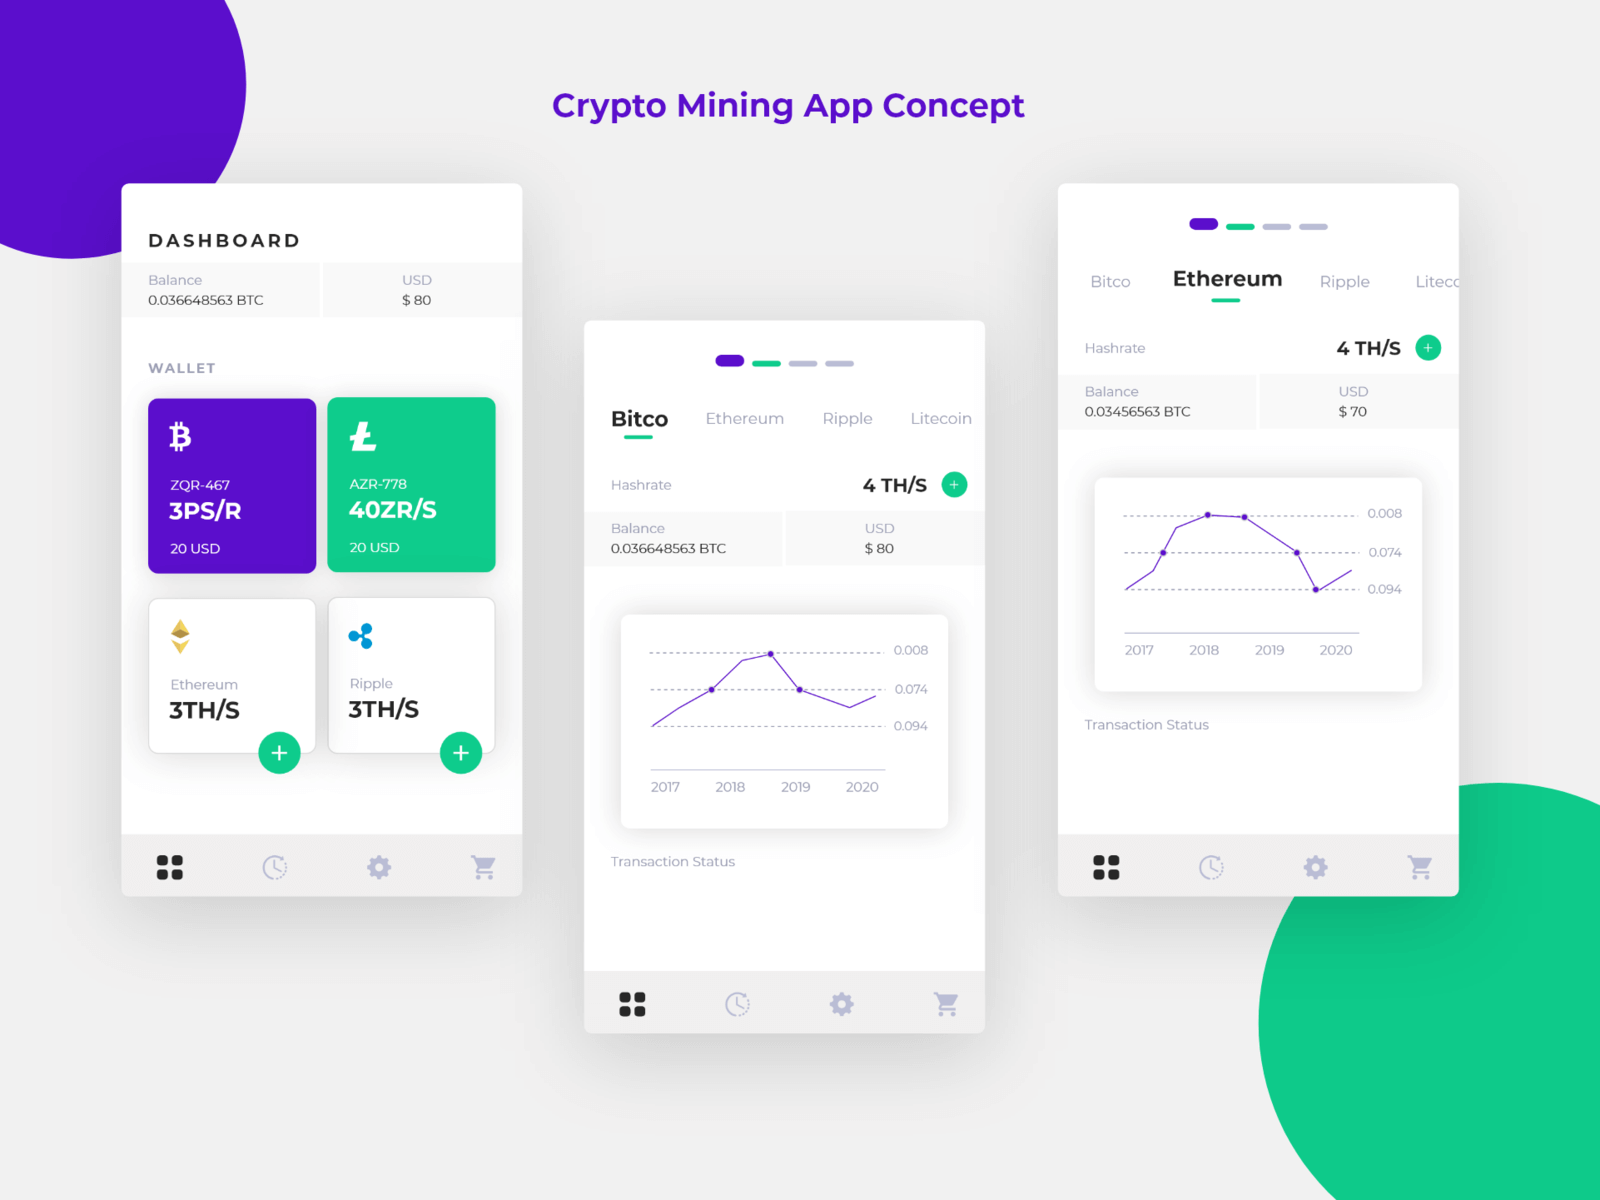 Crypto Mining App concept cover image